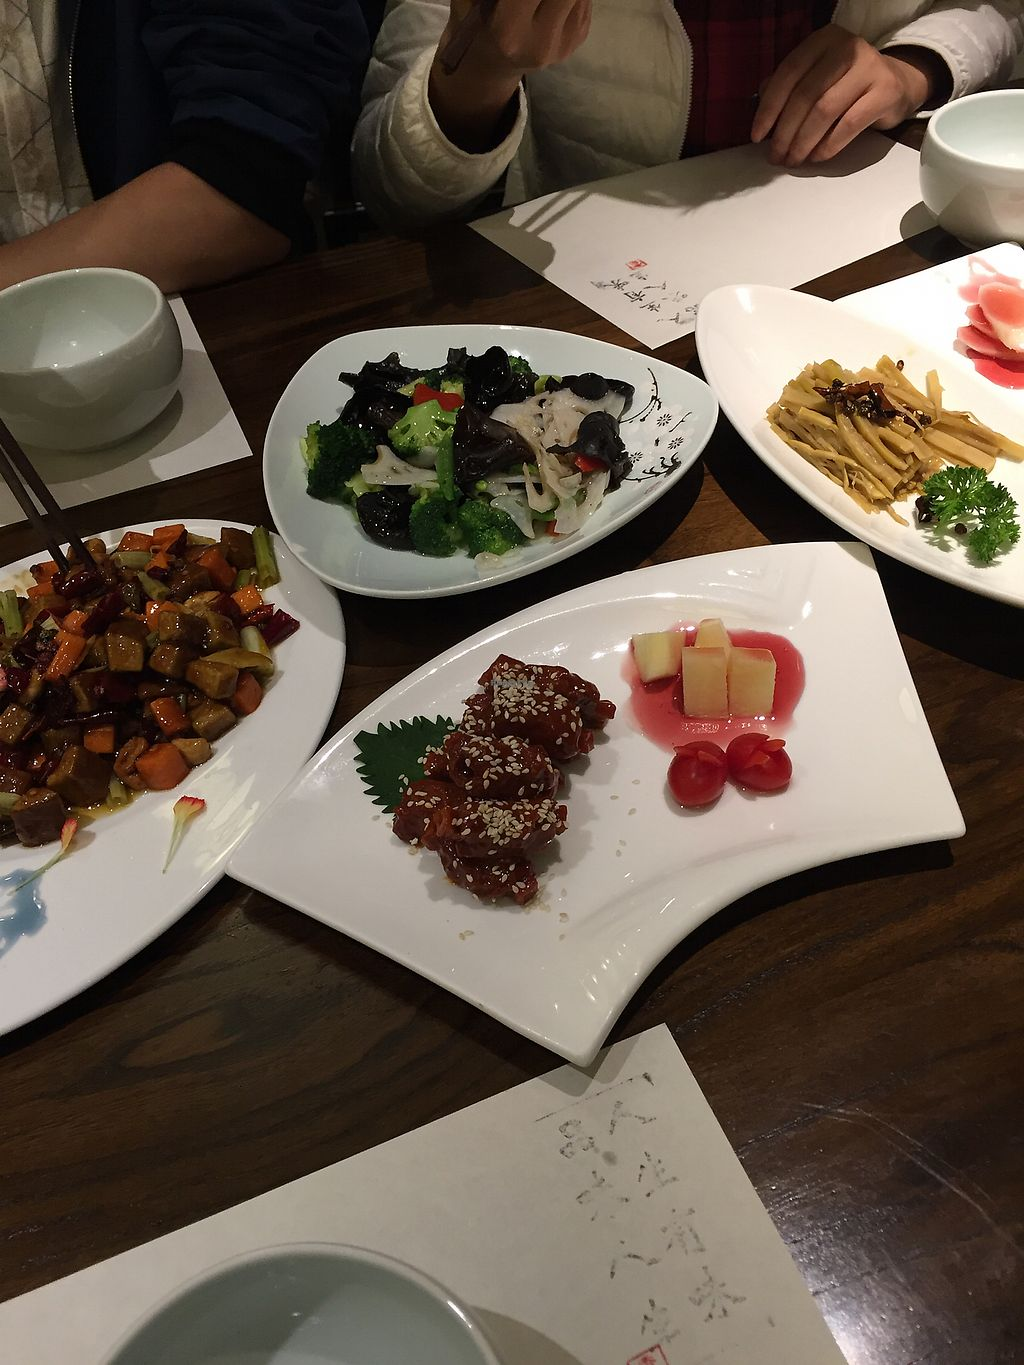 """Photo of Wenshu Temple Restaurant  by <a href=""""/members/profile/H2OAddict"""">H2OAddict</a> <br/>A sample of the dishes we ordered <br/> November 14, 2017  - <a href='/contact/abuse/image/68196/325496'>Report</a>"""